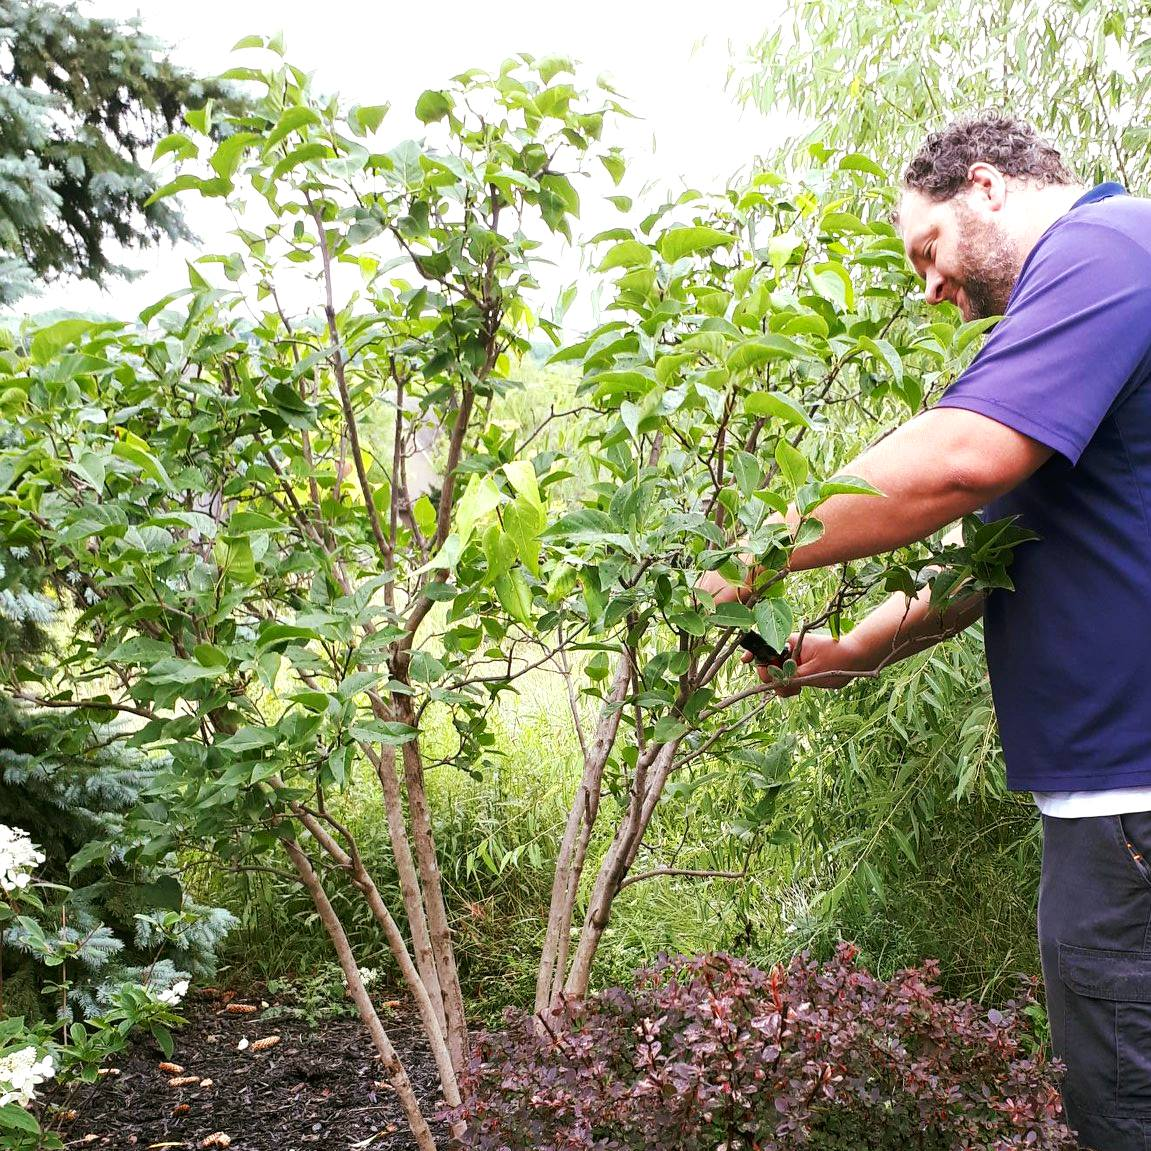 Richard pruning at blue mountain four season